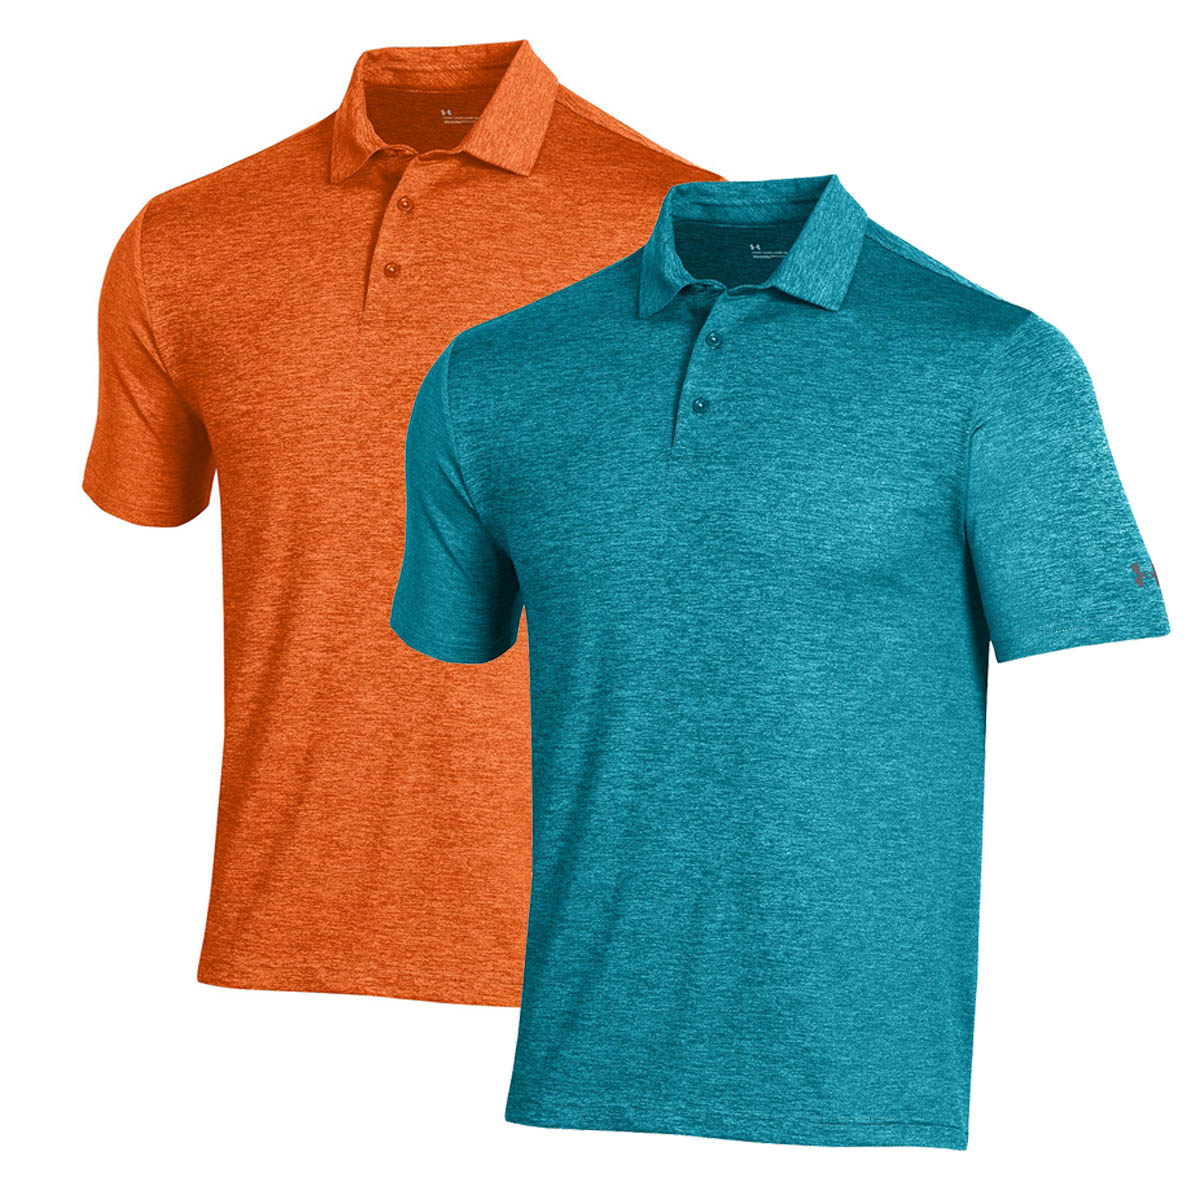 Under Armour Men's Playoff 2.0 Heather Polo